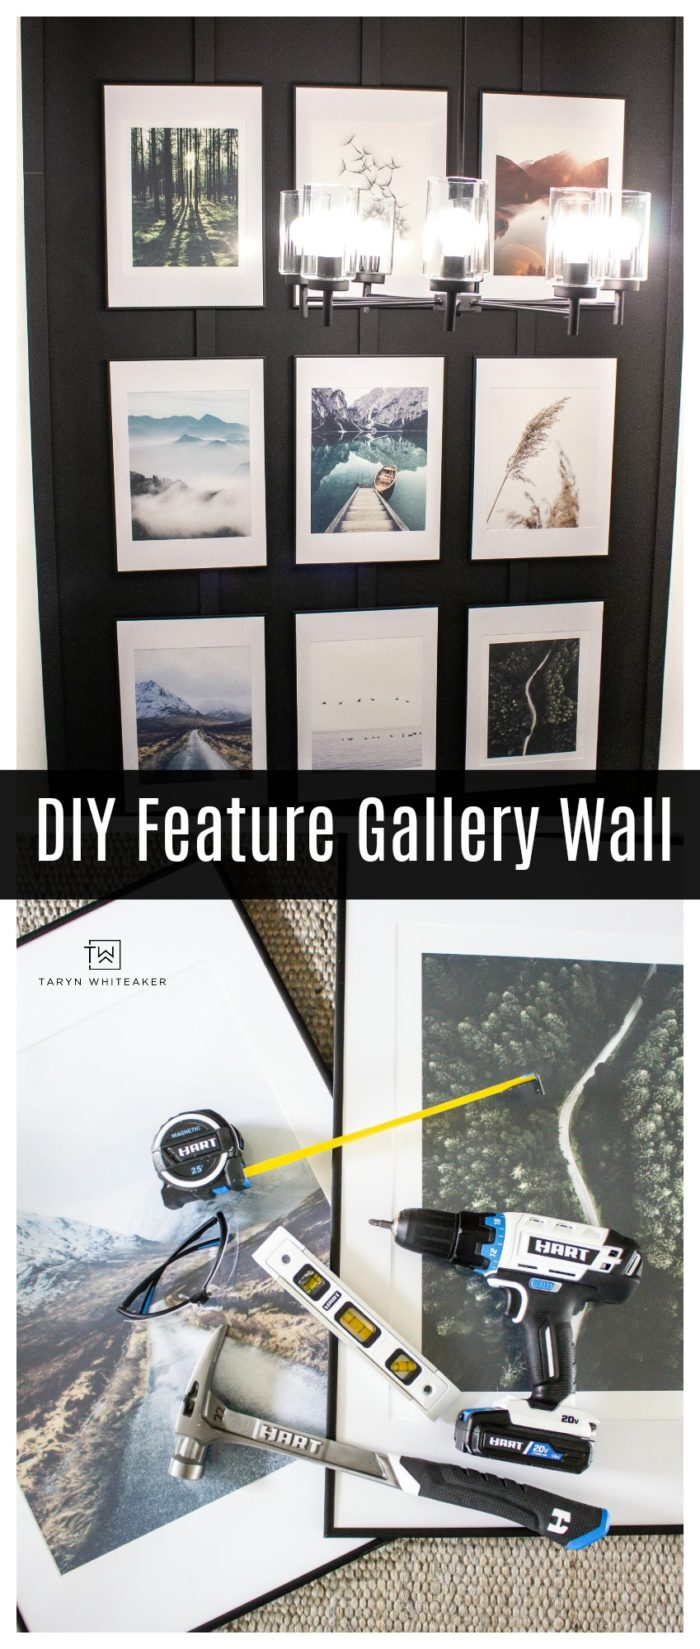 Learn how to create your own DIY Feature Gallery Wall with wall moulding and large prints!